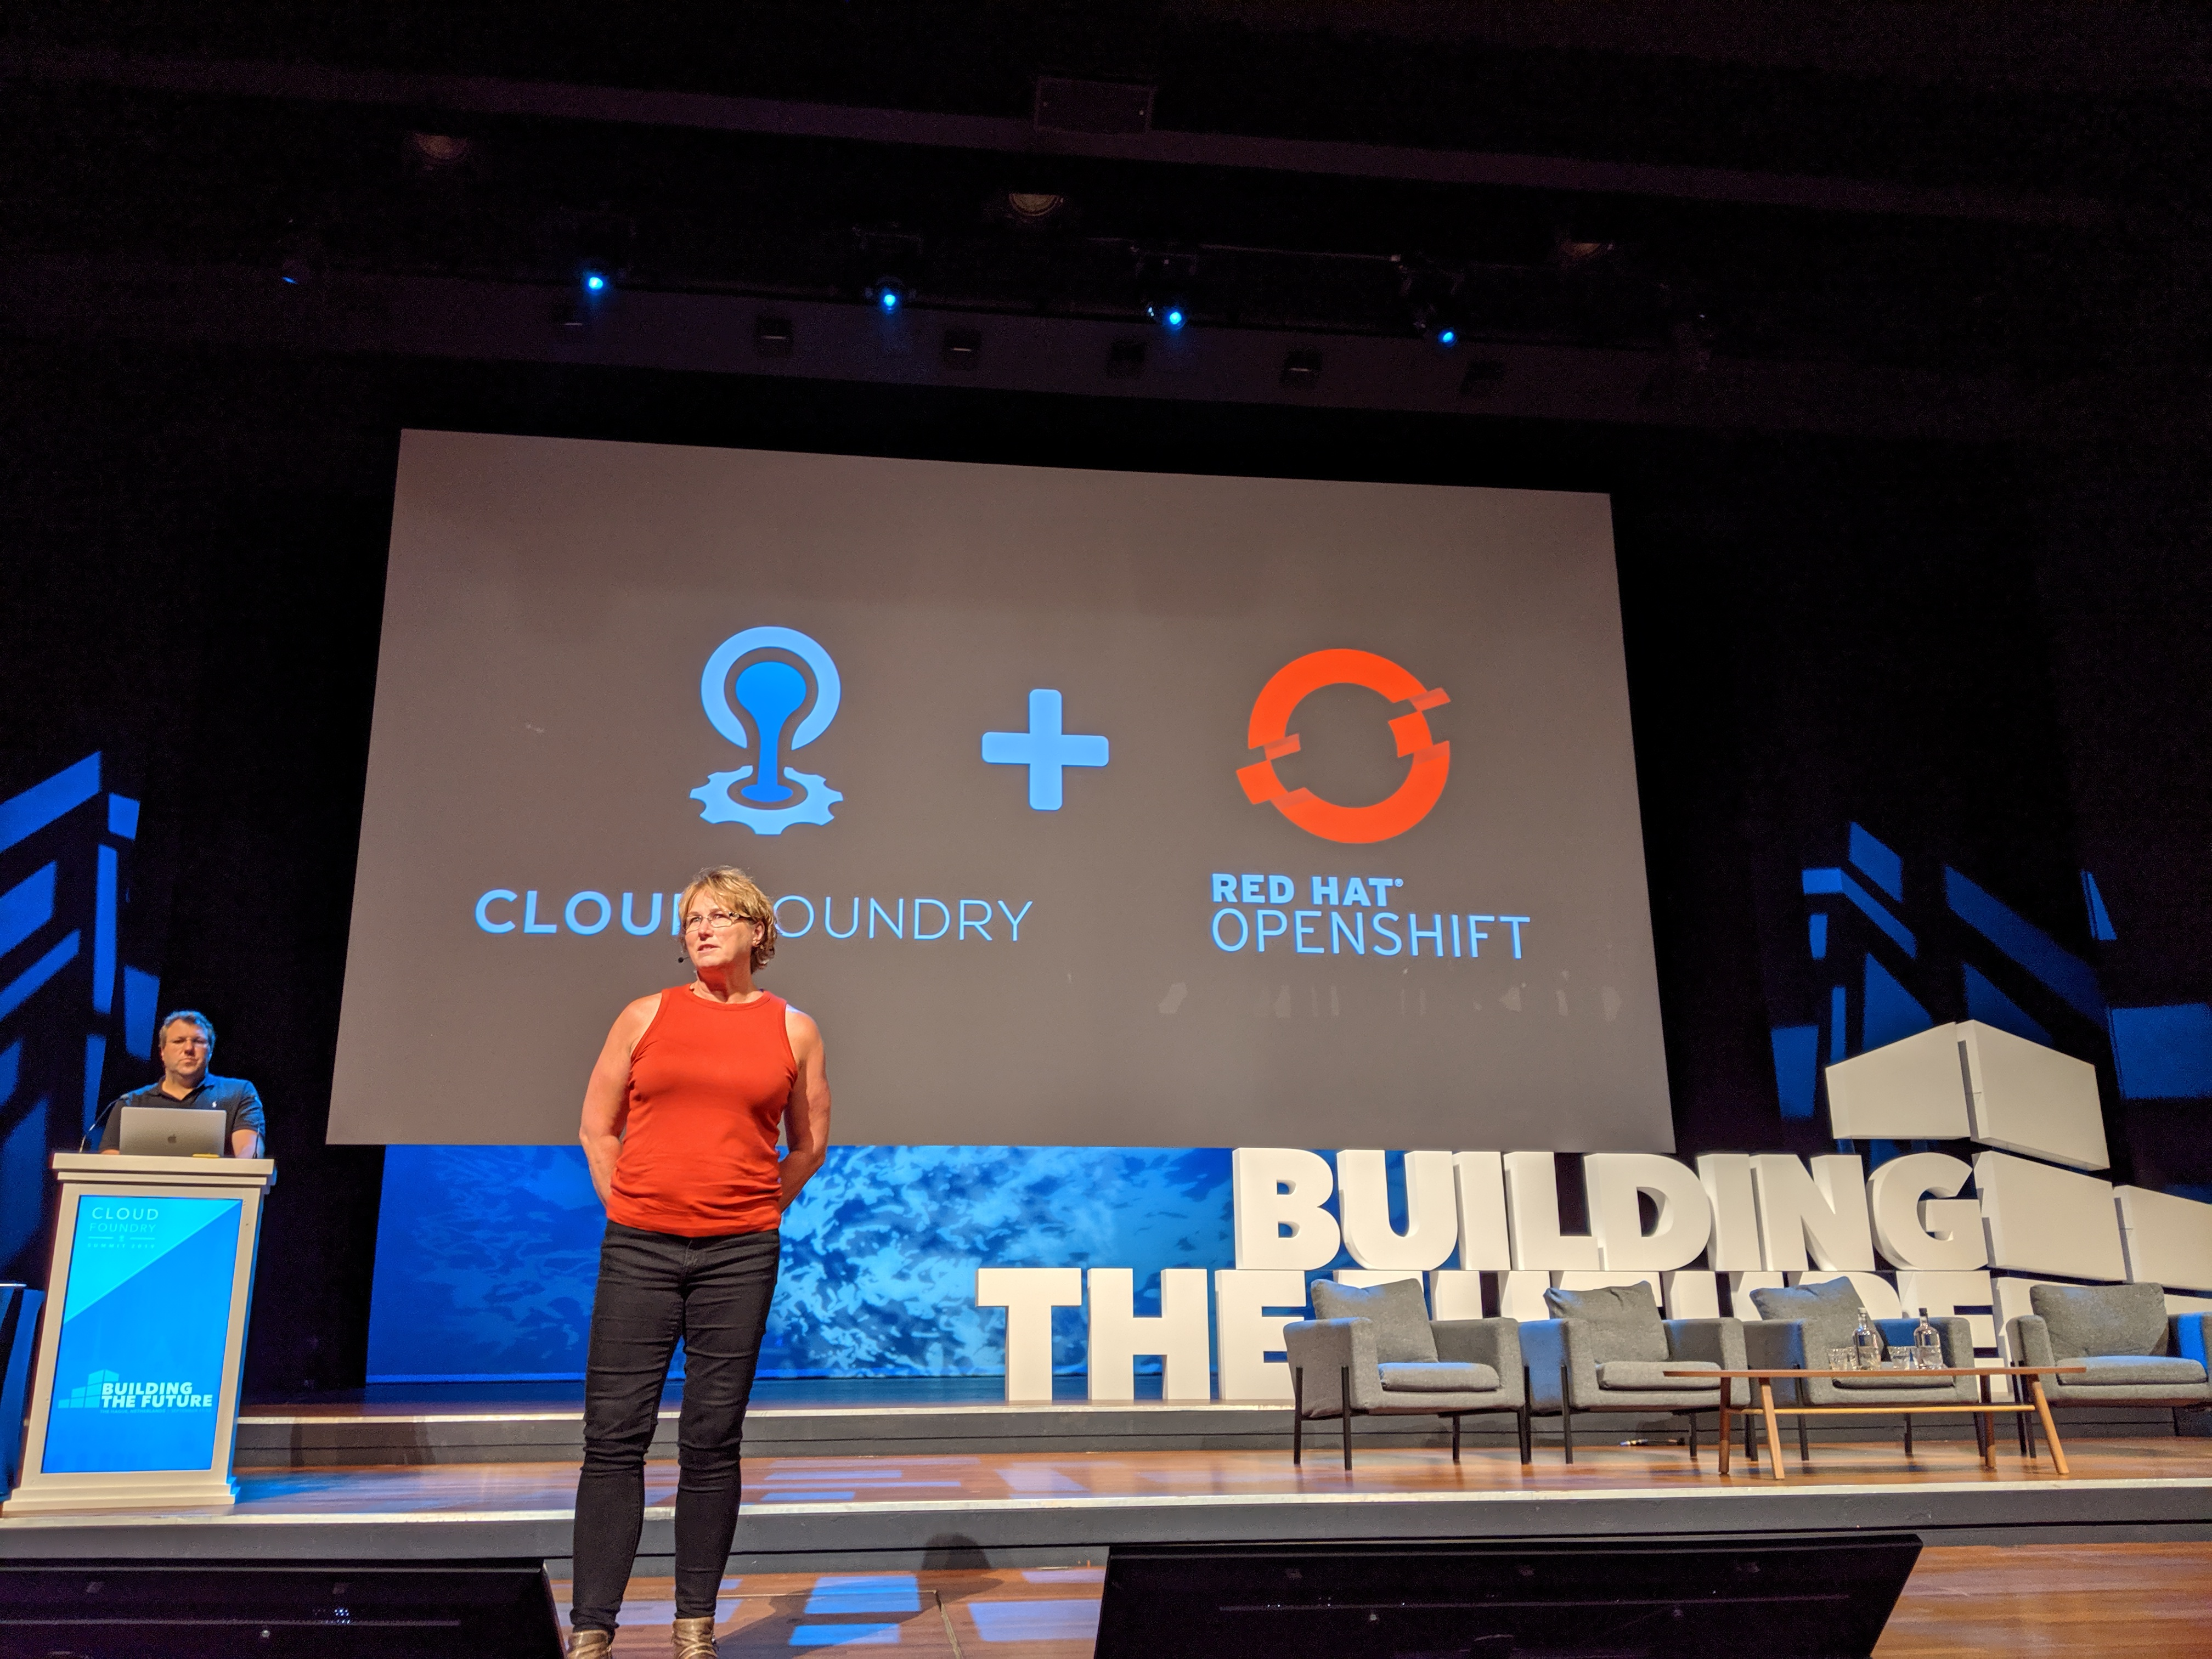 IBM brings Cloud Foundry and Red Hat OpenShift together